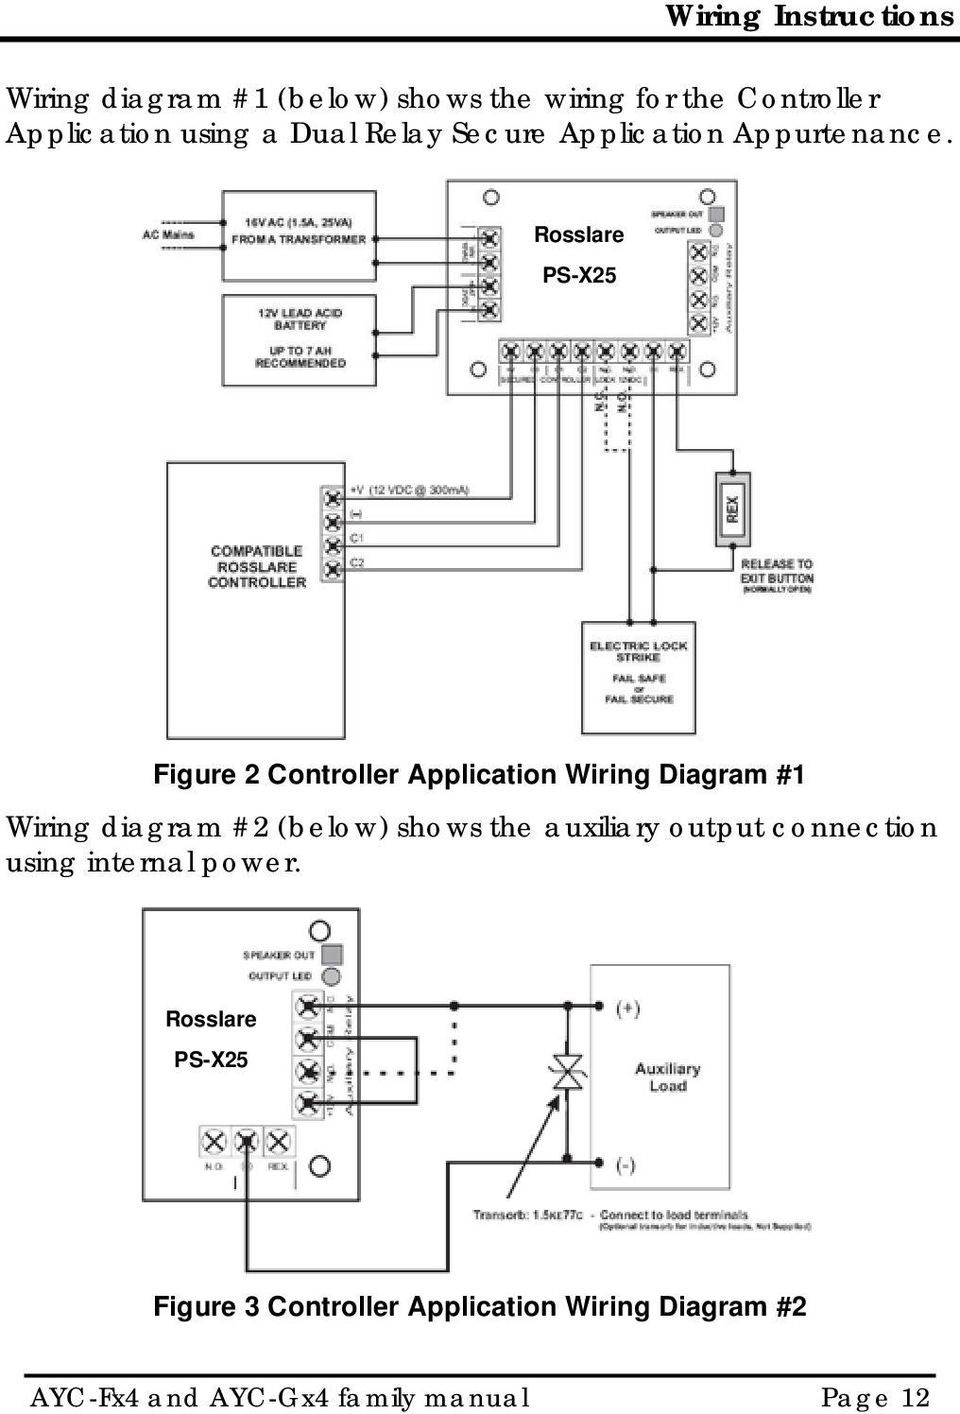 Rosslare PS-X25 Figure 2 Controller Application Wiring Diagram #1 Wiring diagram #2 (below) shows the